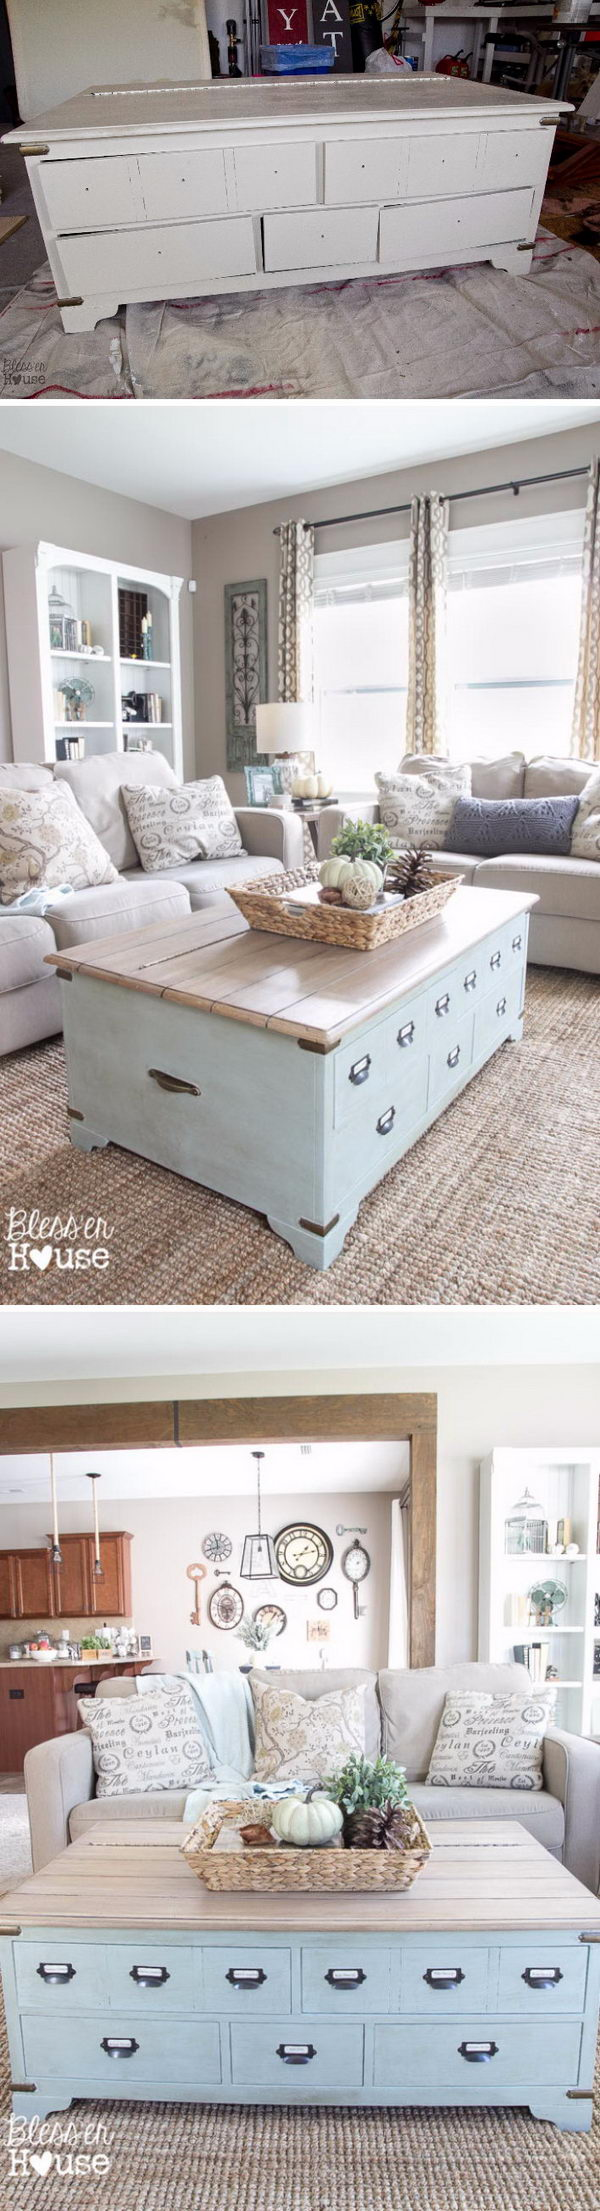 $50 Faux Planked Coffee Table Makeover from a Trunk Coffee Table.